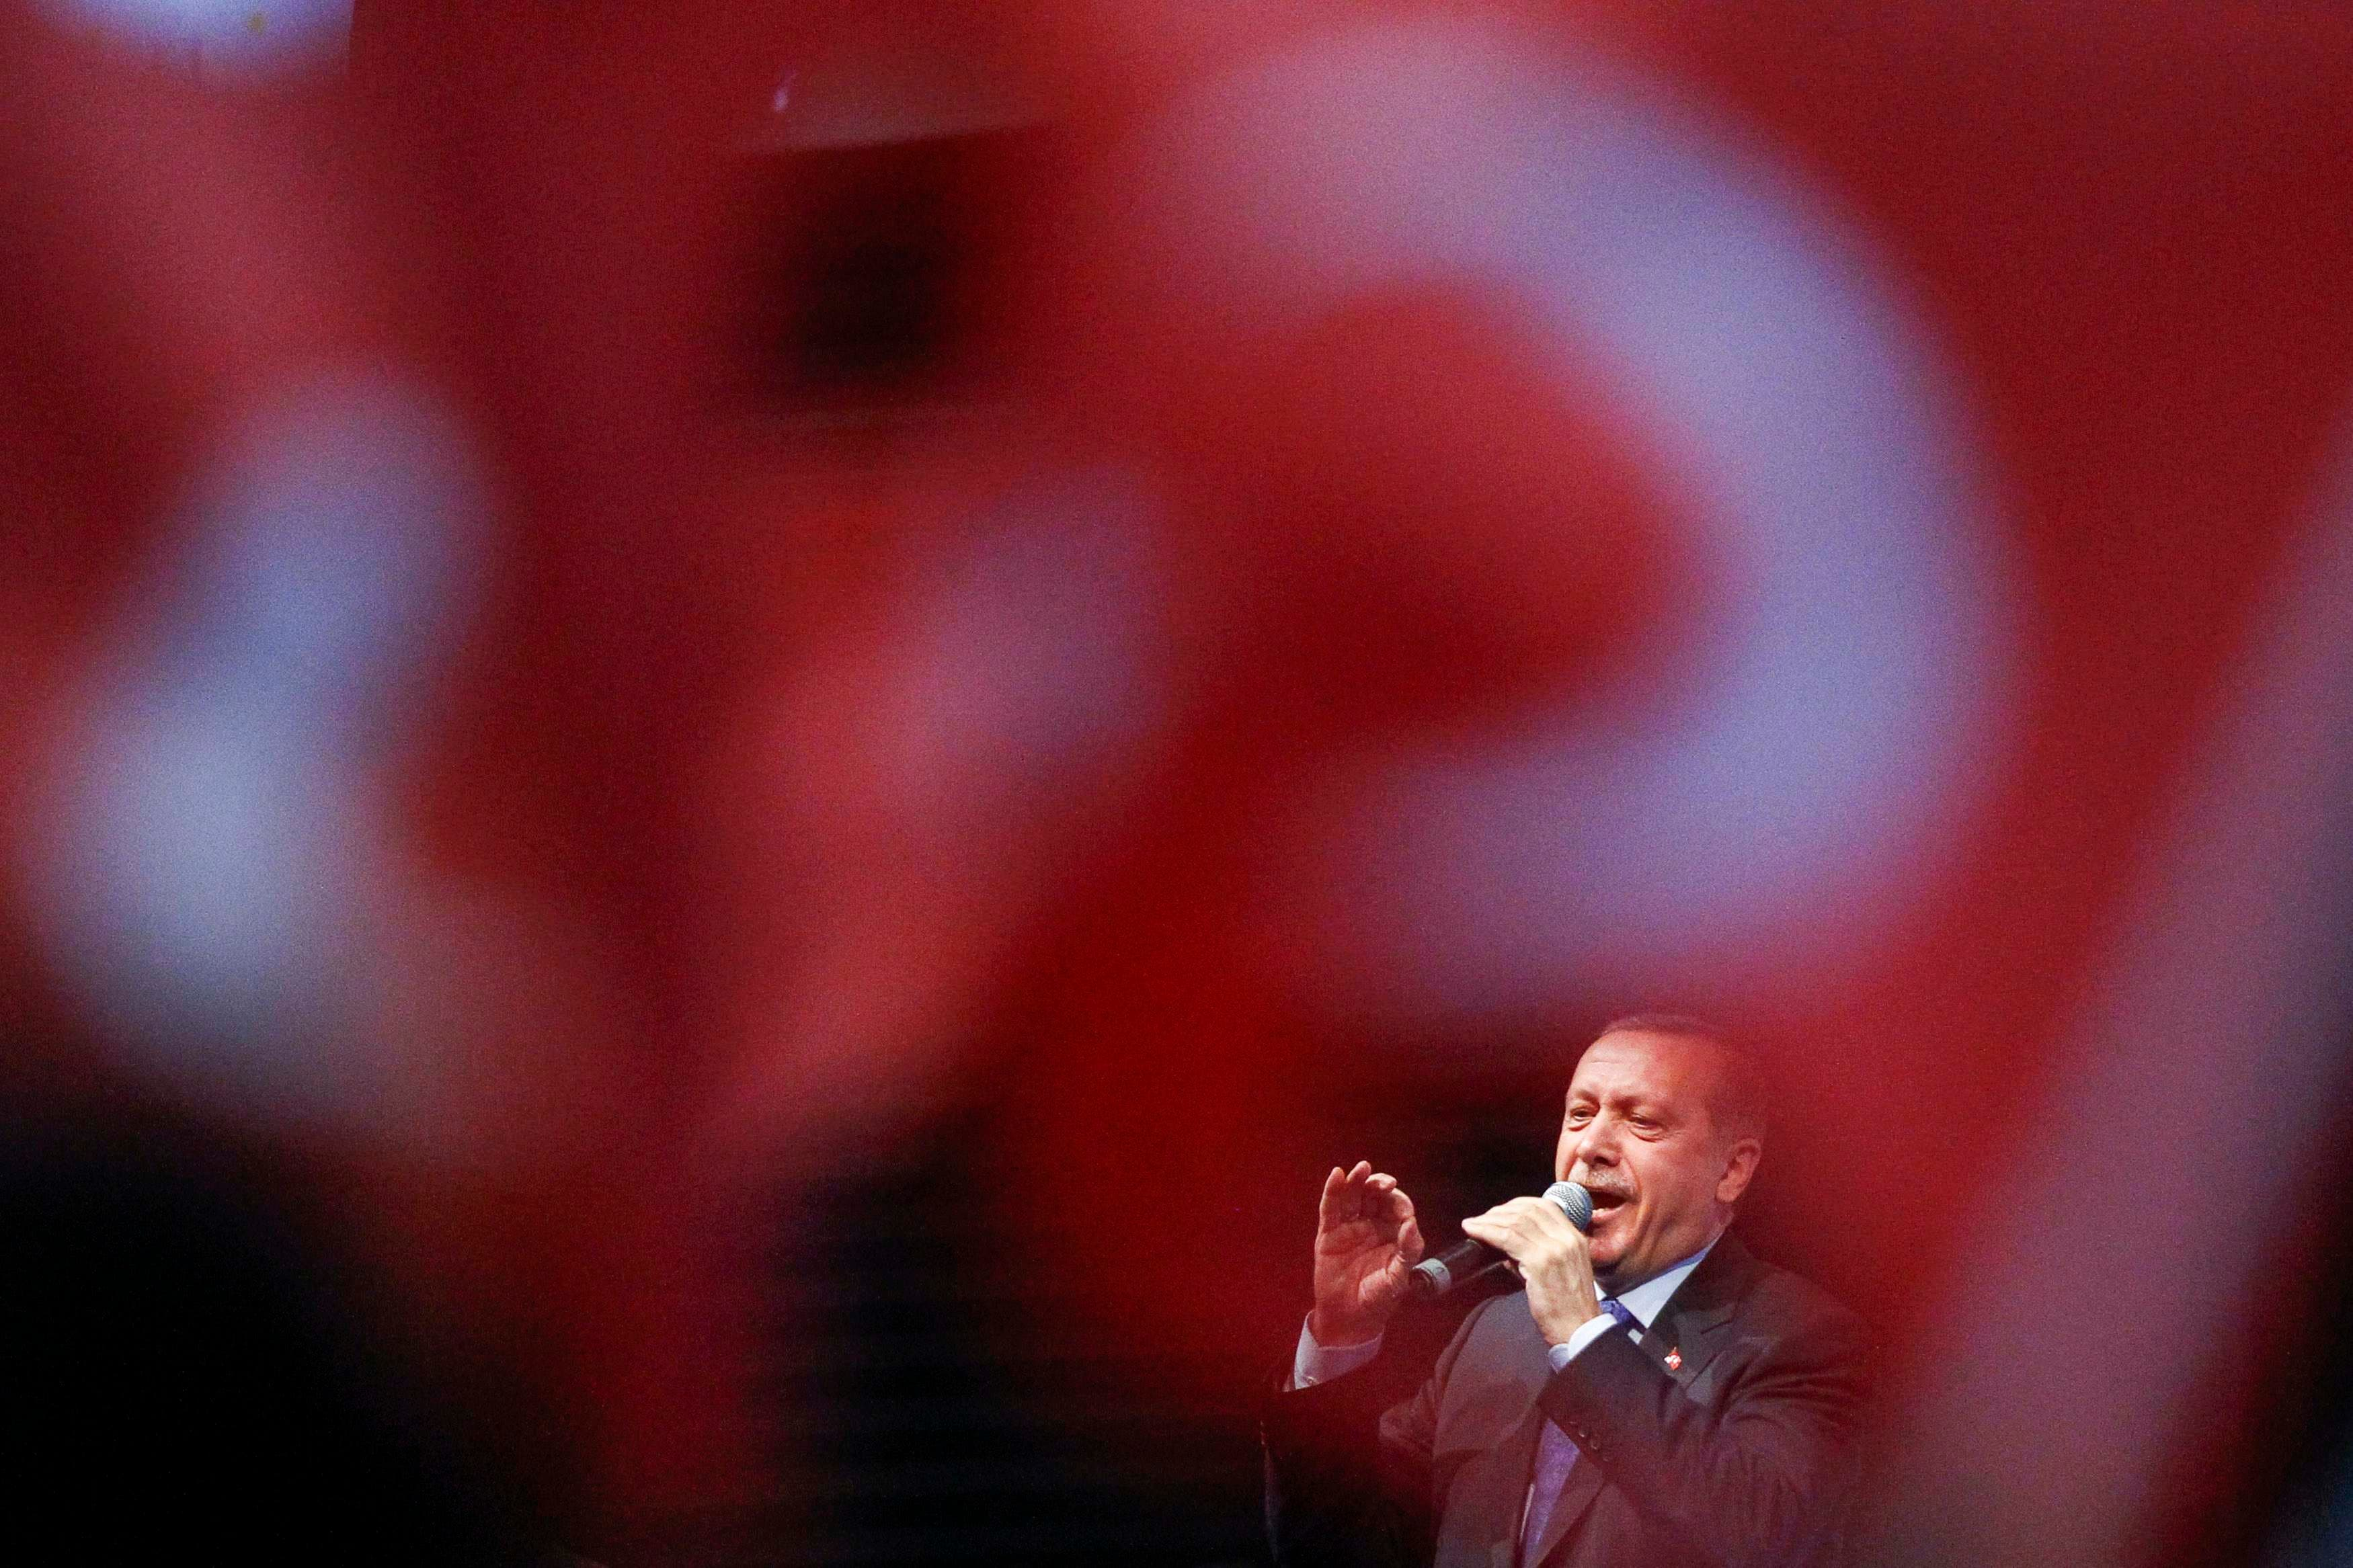 Turkey's Prime Minister Tayyip Erdogan speaks as he attends a political rally for members of the expatriate Turk community in Chassieu, near Lyon, June 21, 2014. (Reuters)